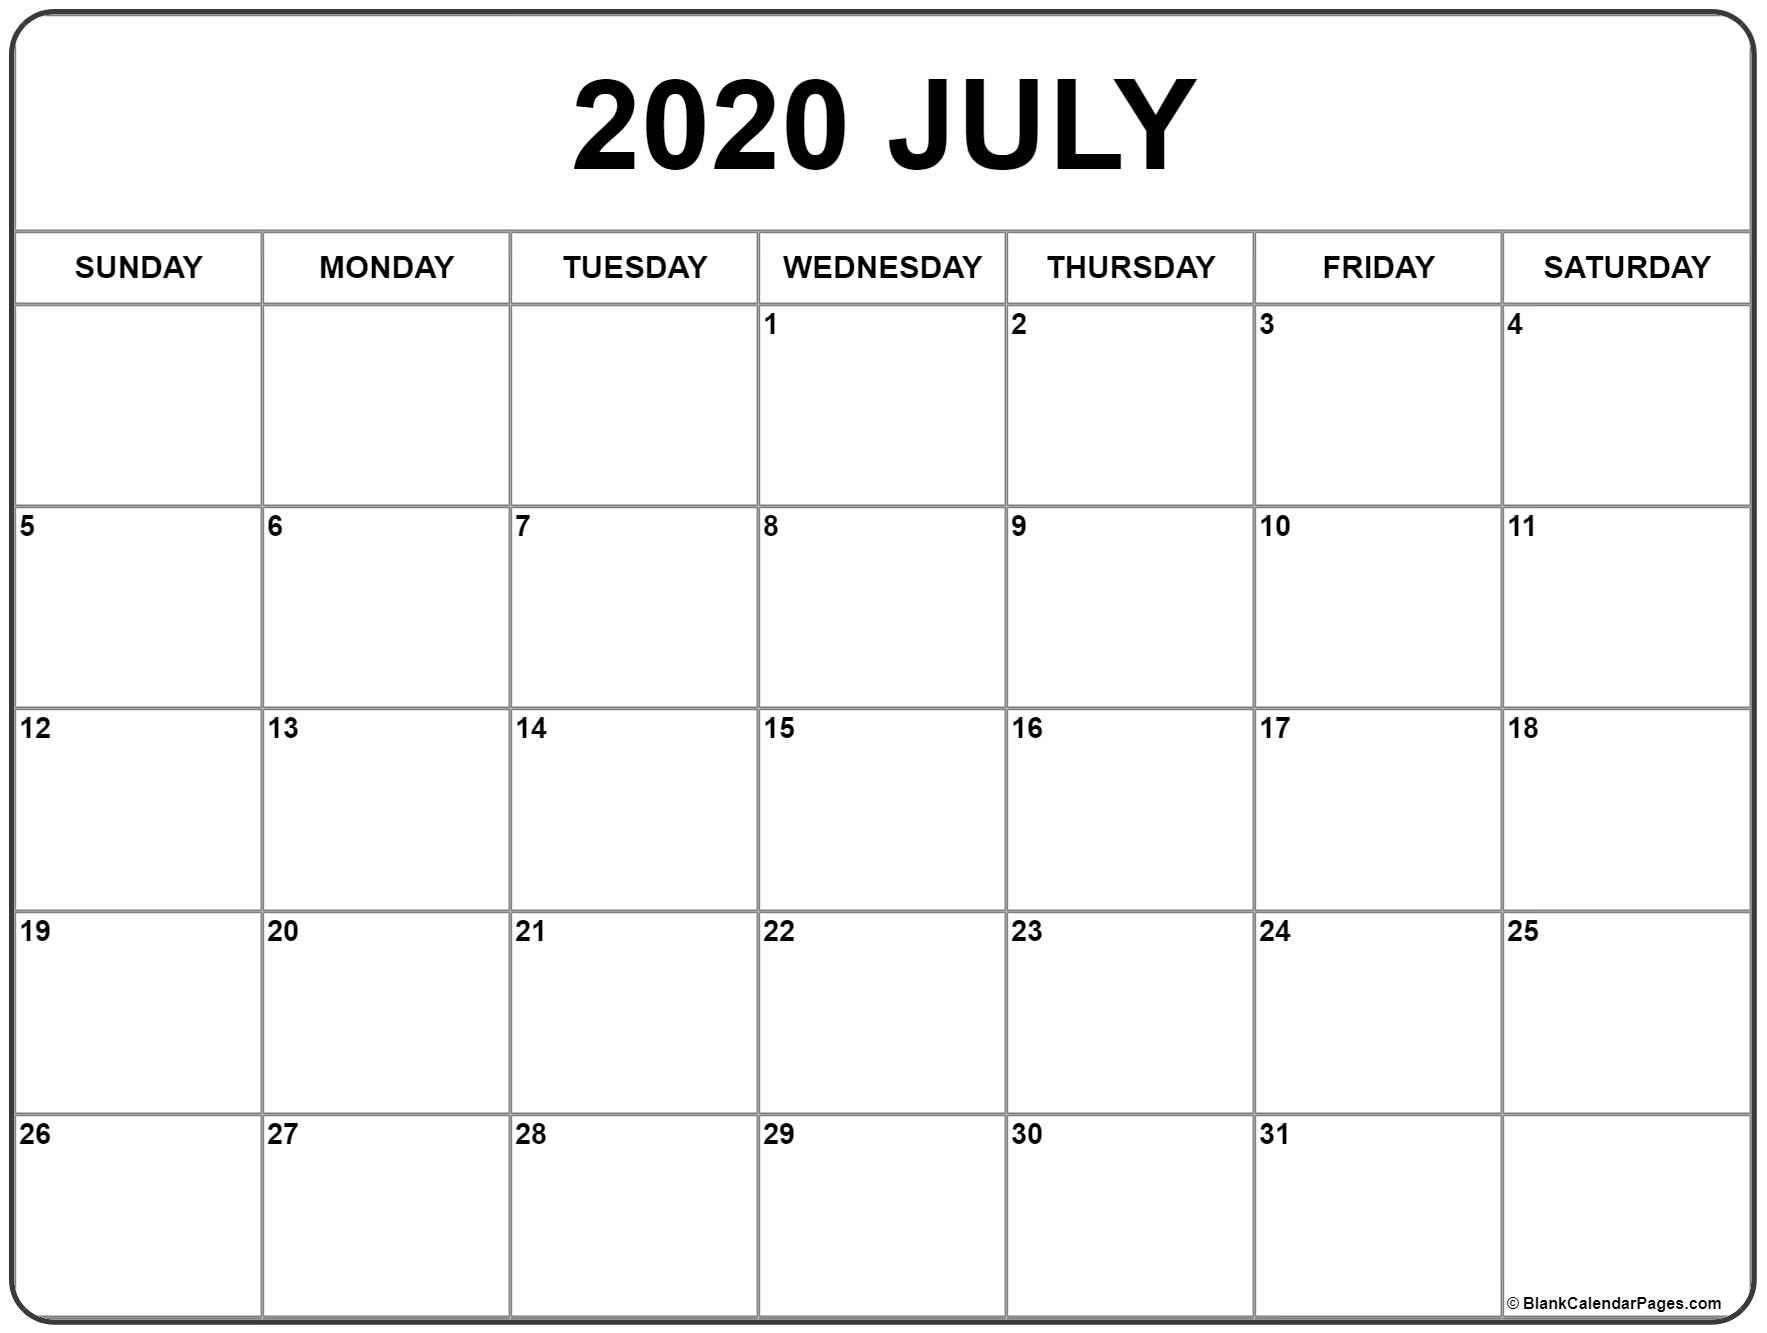 July 2020 Calendar | Free Printable Monthly Calendars throughout Printable Fill In Calendar 2020